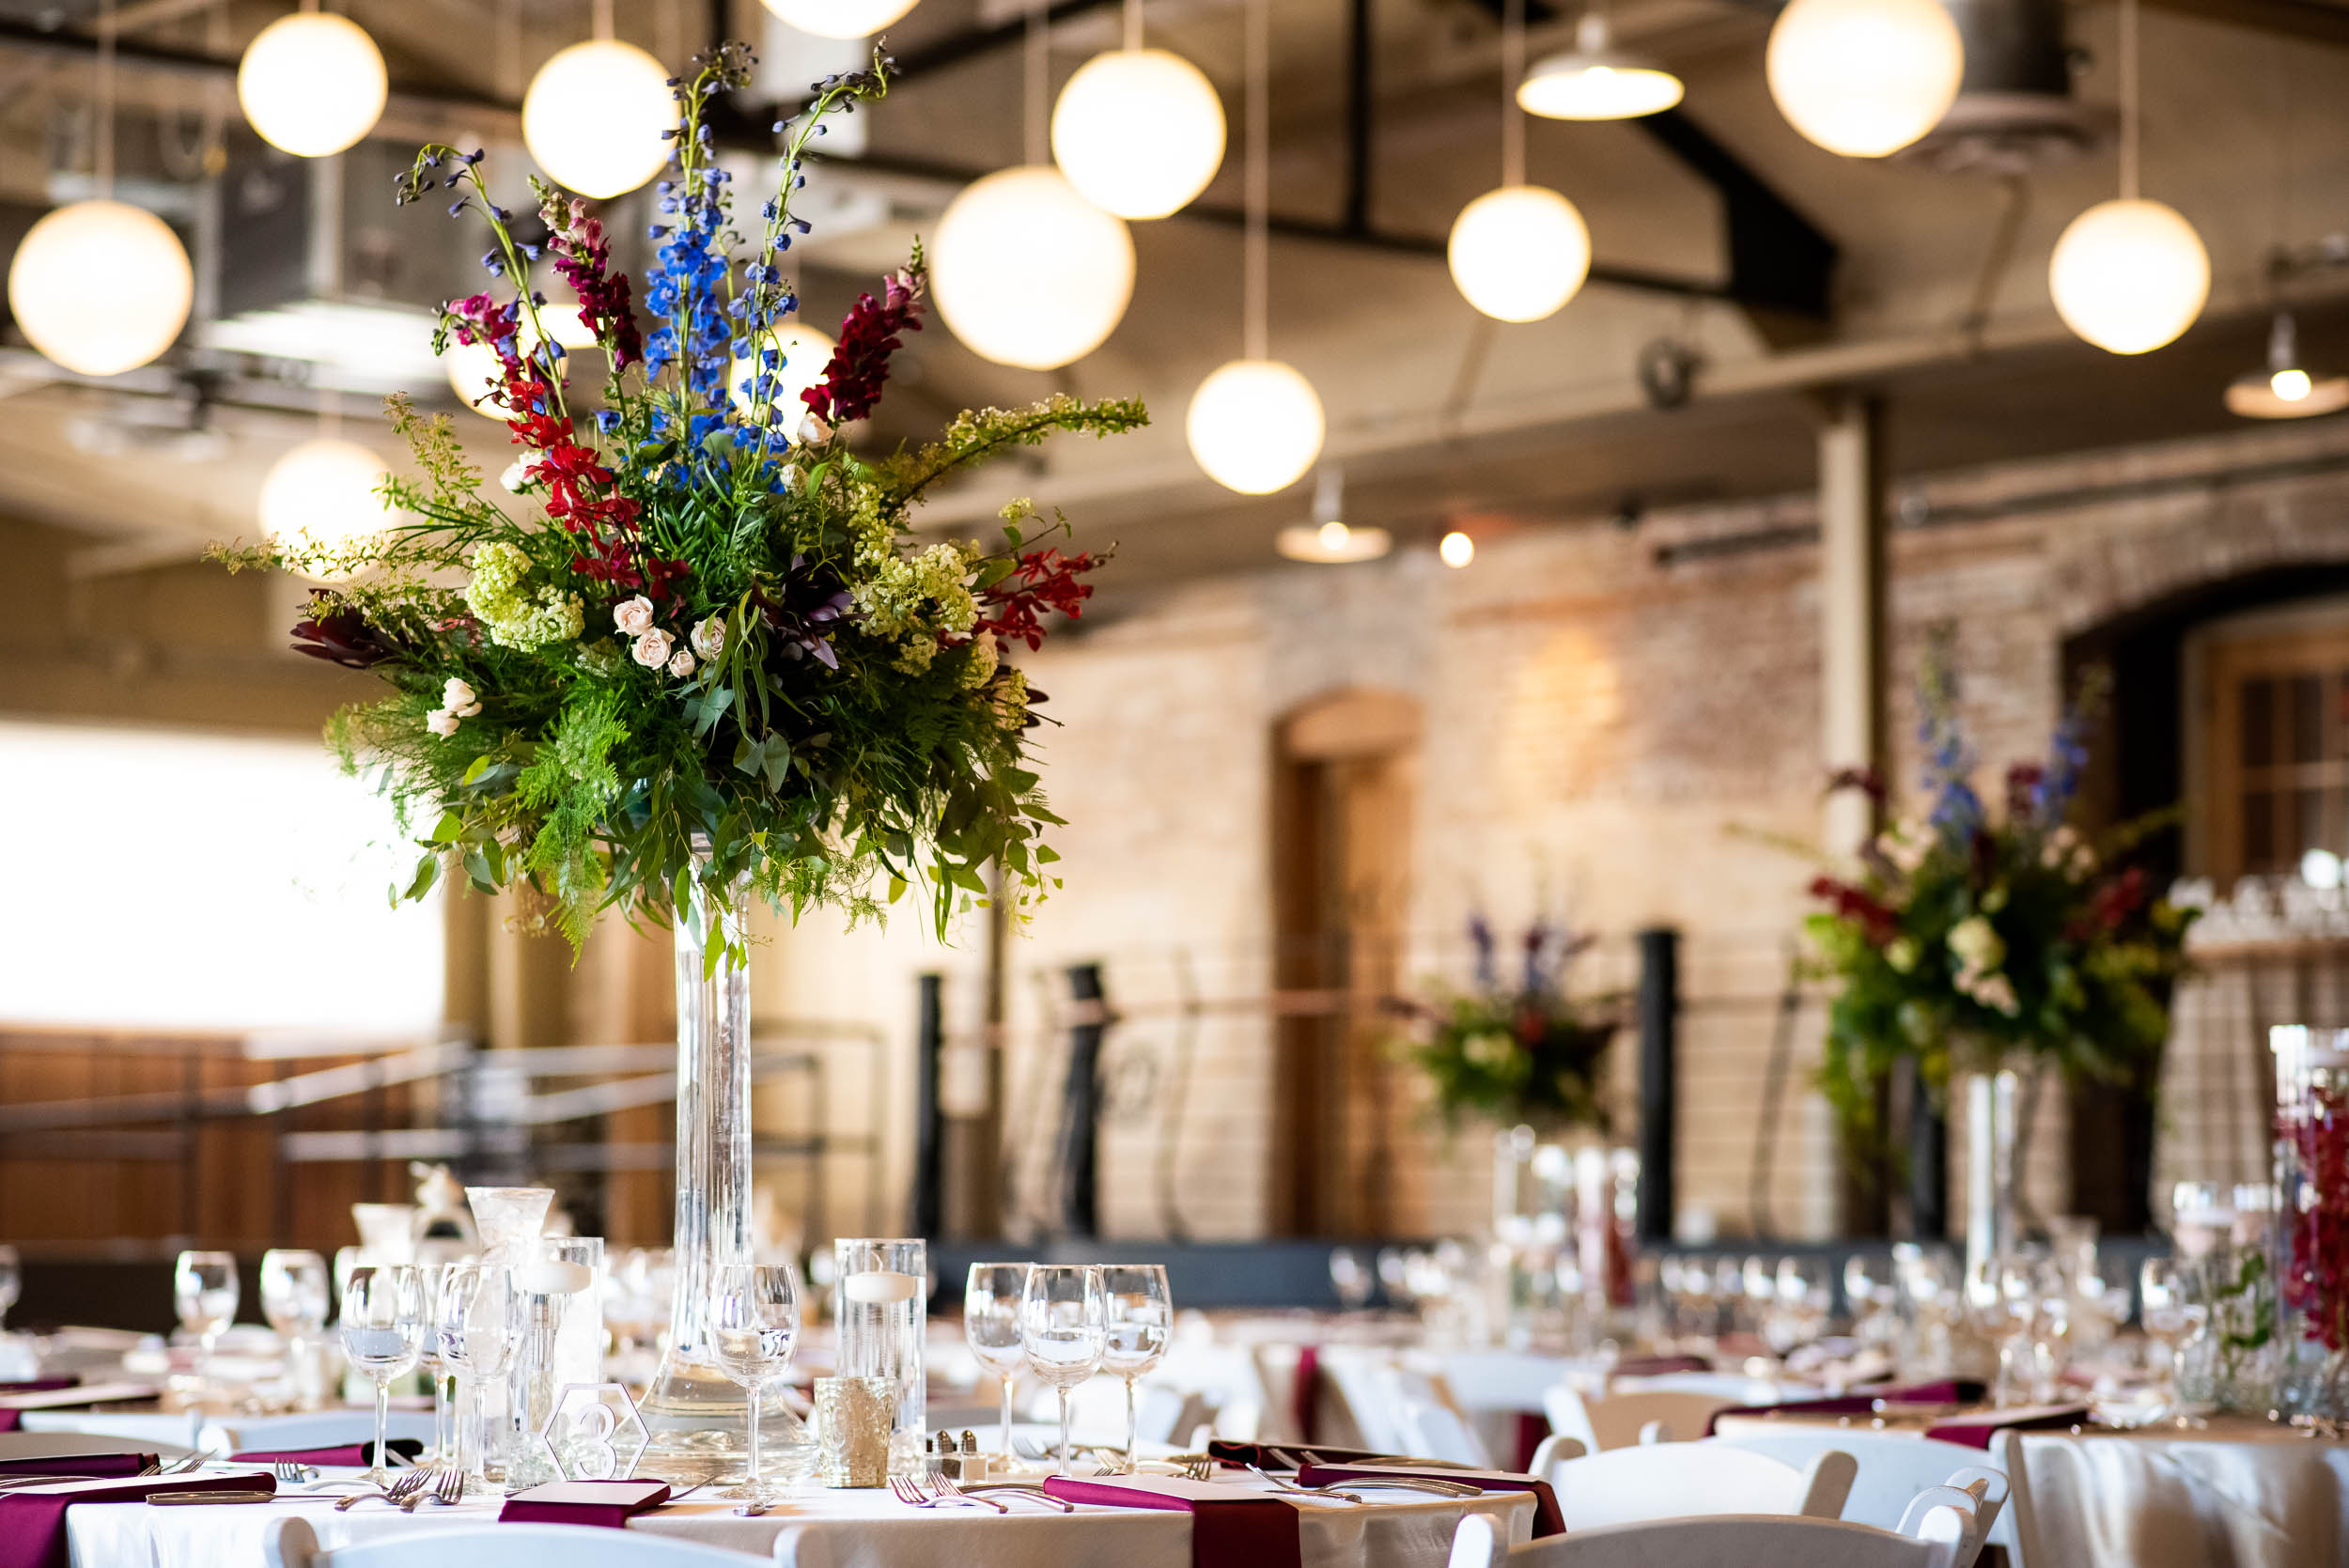 Wedding reception decor: Modern industrial Chicago wedding inside Prairie Street Brewhouse captured by J. Brown Photography. Find more wedding ideas at jbrownphotography.com!